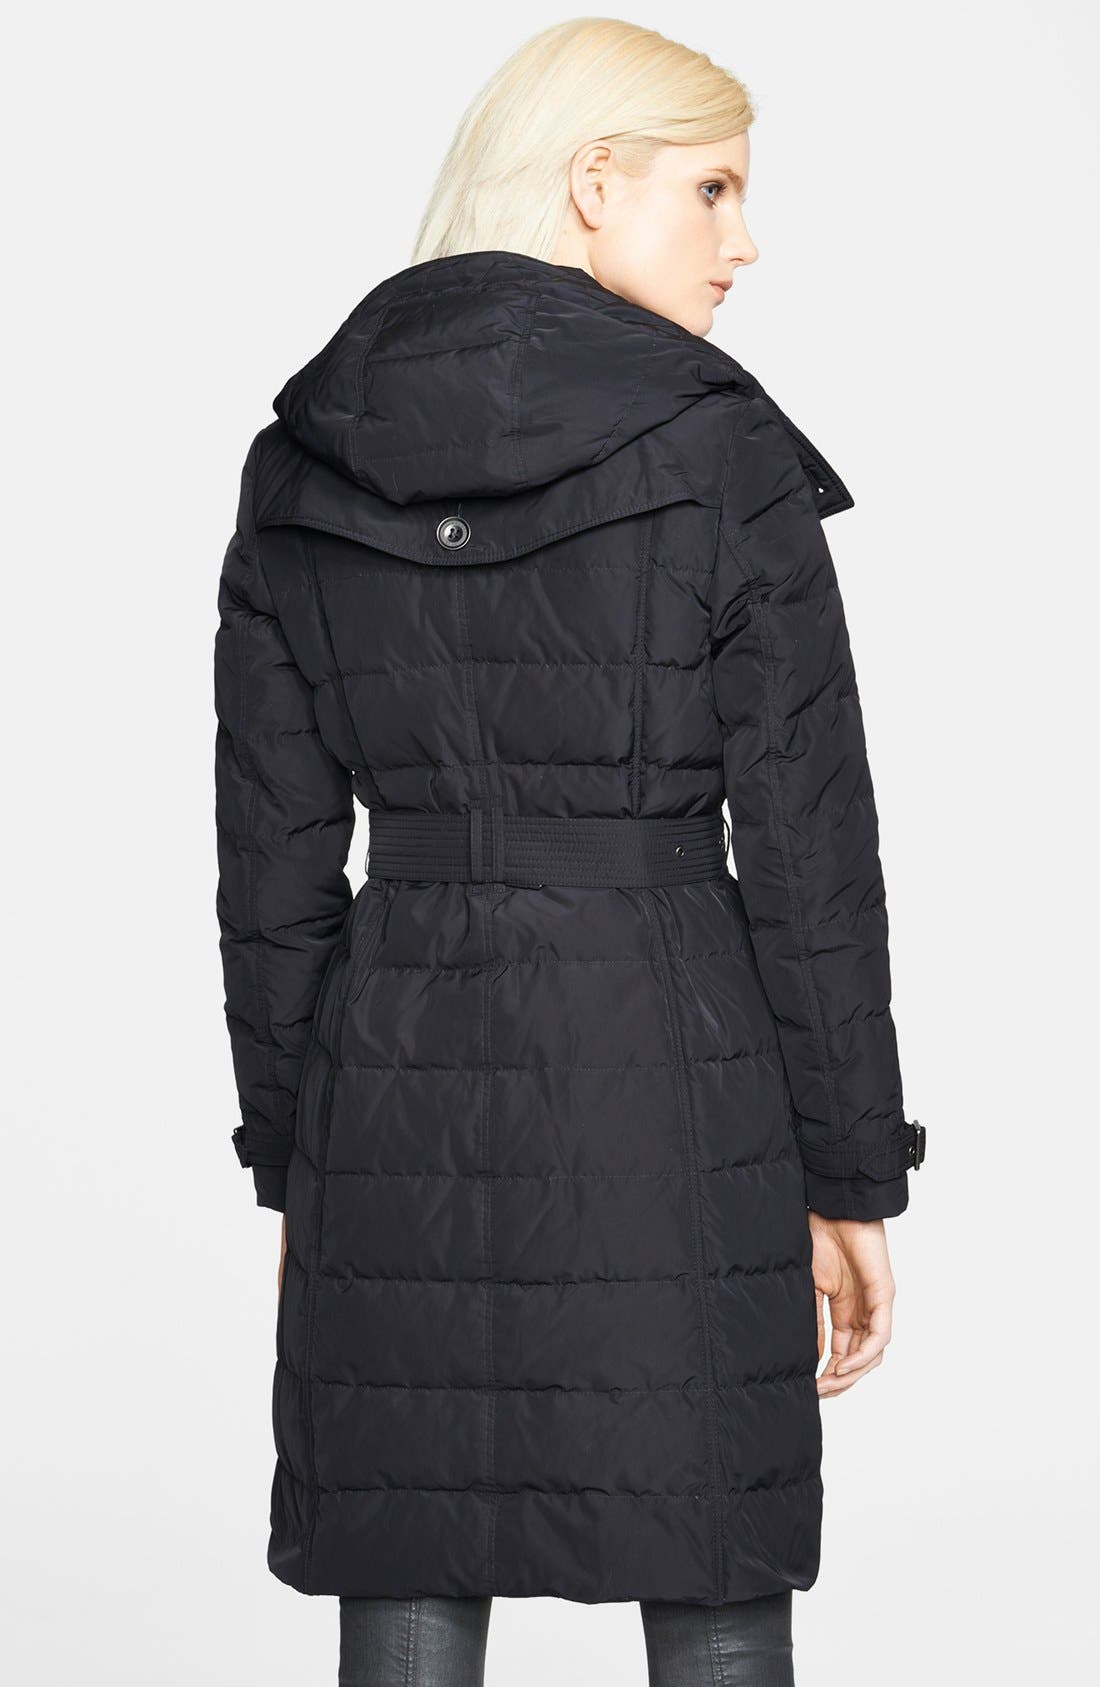 'Allerdale' Belted Down Jacket,                             Alternate thumbnail 3, color,                             001